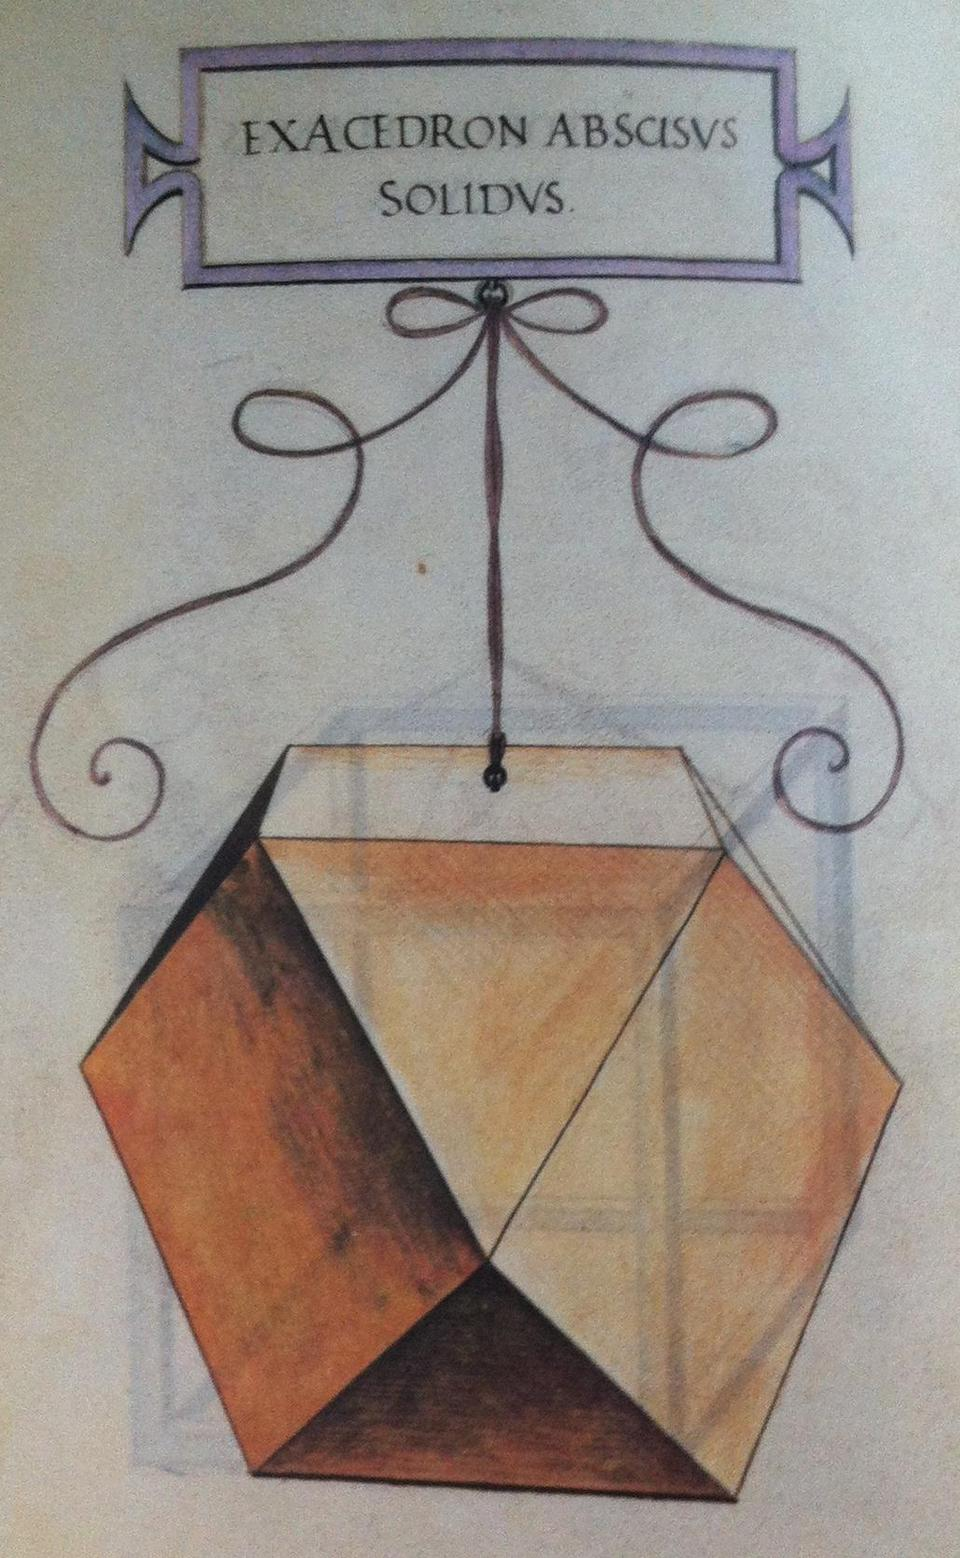 A drawing of a cuboctahedron by Leonardo da Vinci